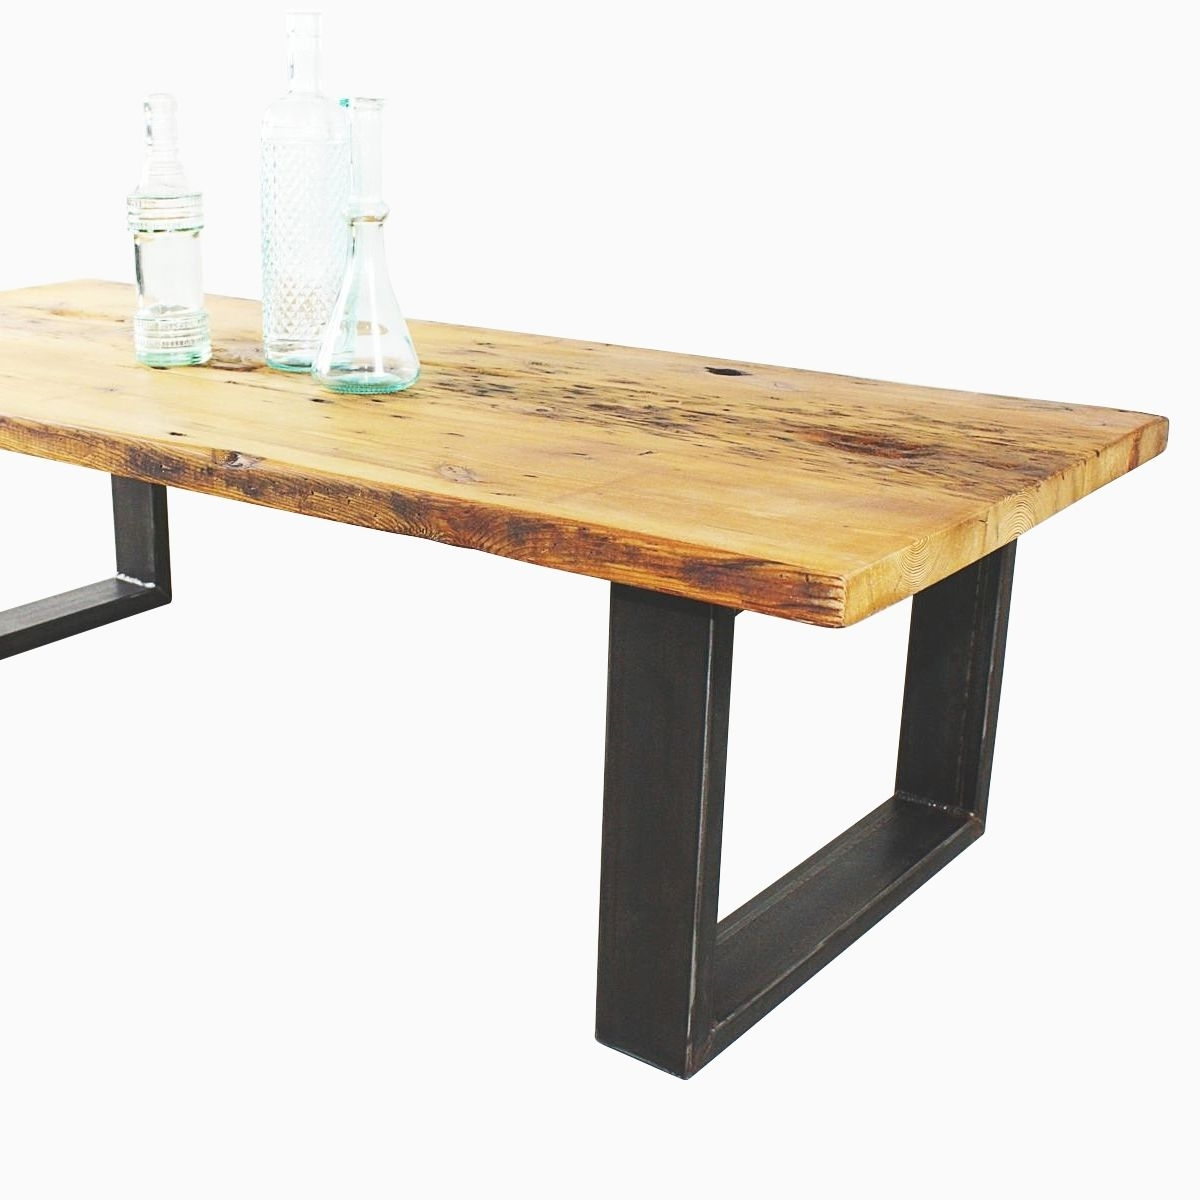 Trendy Reclaimed Pine & Iron Coffee Tables Intended For Buy A Hand Made Reclaimed Pine Coffee Table, Made To Order From What (View 16 of 20)